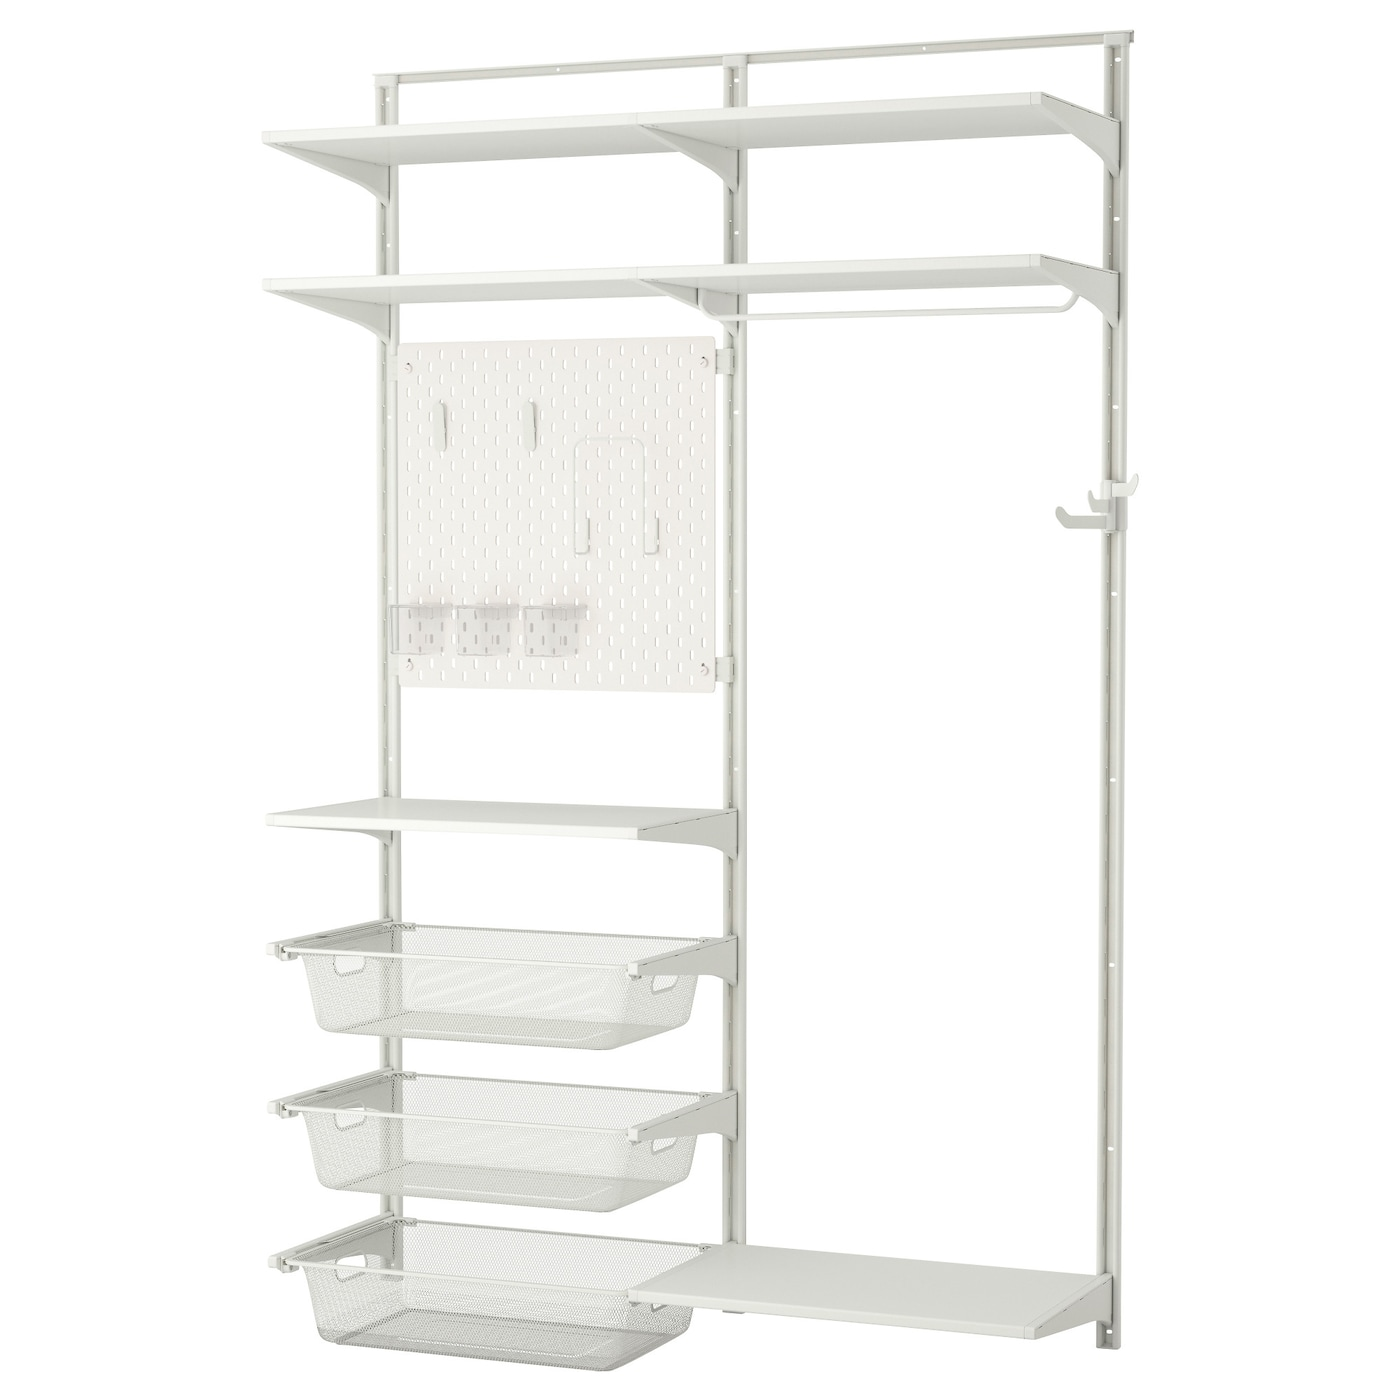 algot sk dis wall upright shelves rod 132x41x199 cm ikea. Black Bedroom Furniture Sets. Home Design Ideas